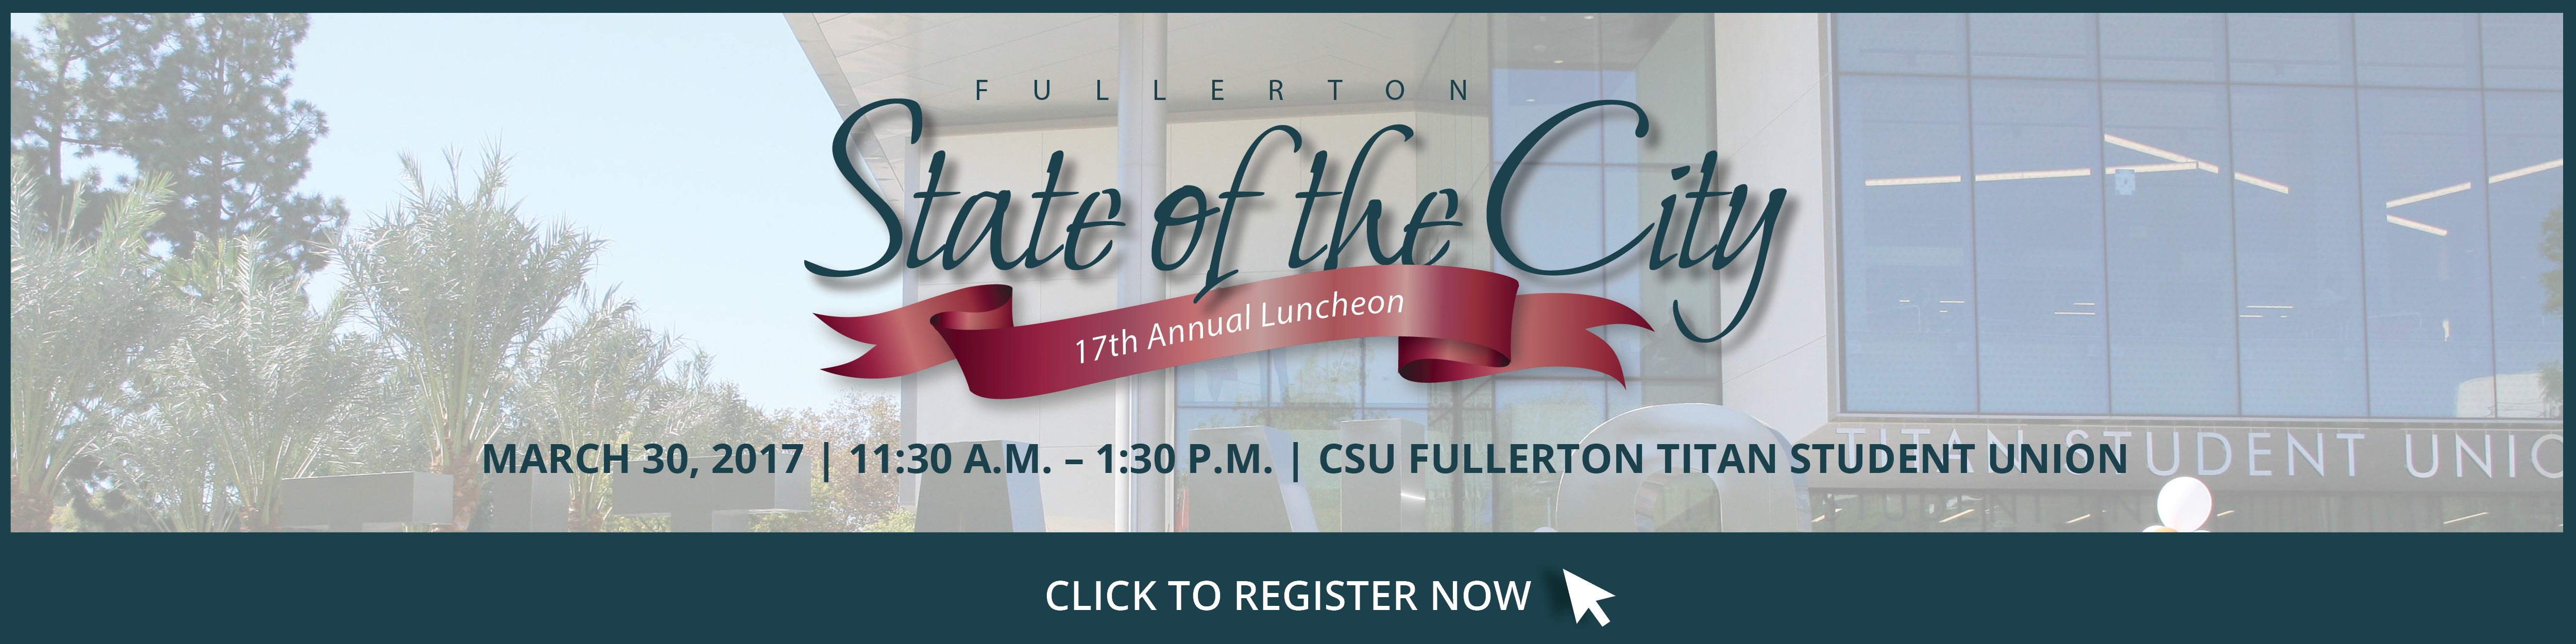 Fullerton State of the City 2017